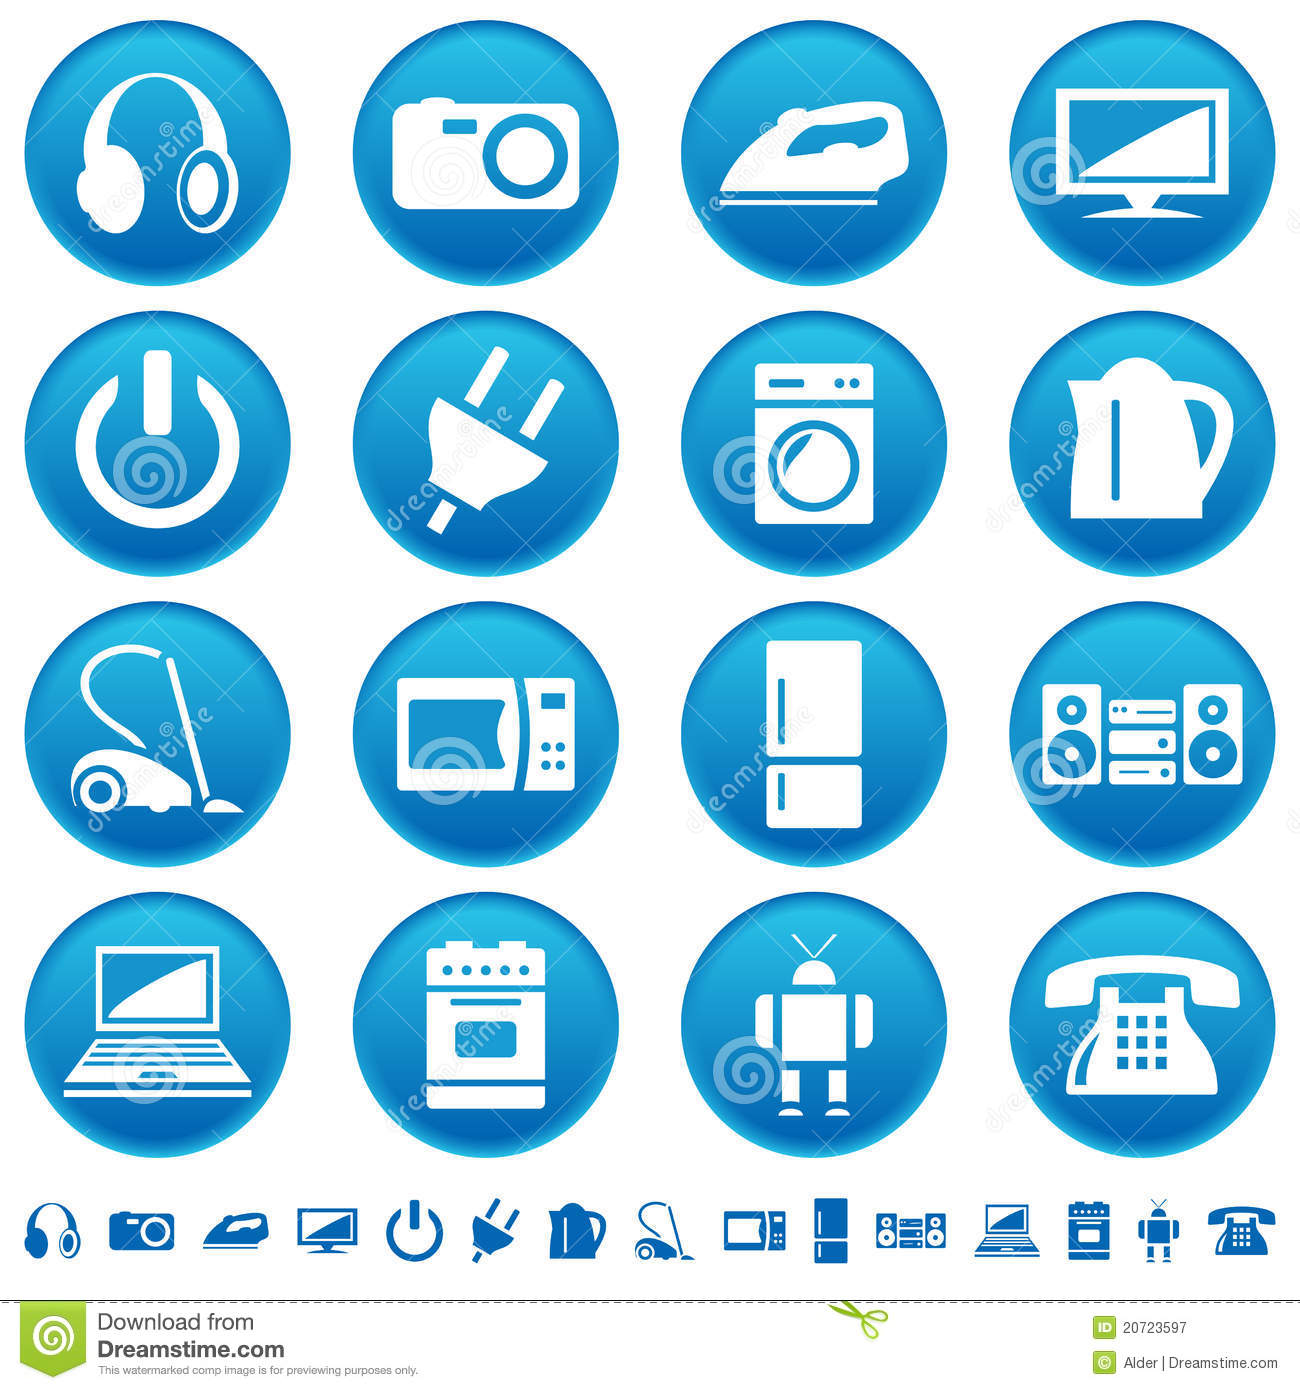 672 additionally How To Connect A Controller To A Pc as well Disk Unknown Not Initialized likewise Schutzbrillenumfrage Auswertung likewise Royalty Free Stock Photography Home Appliances Icons Image20723597. on plug icon blue